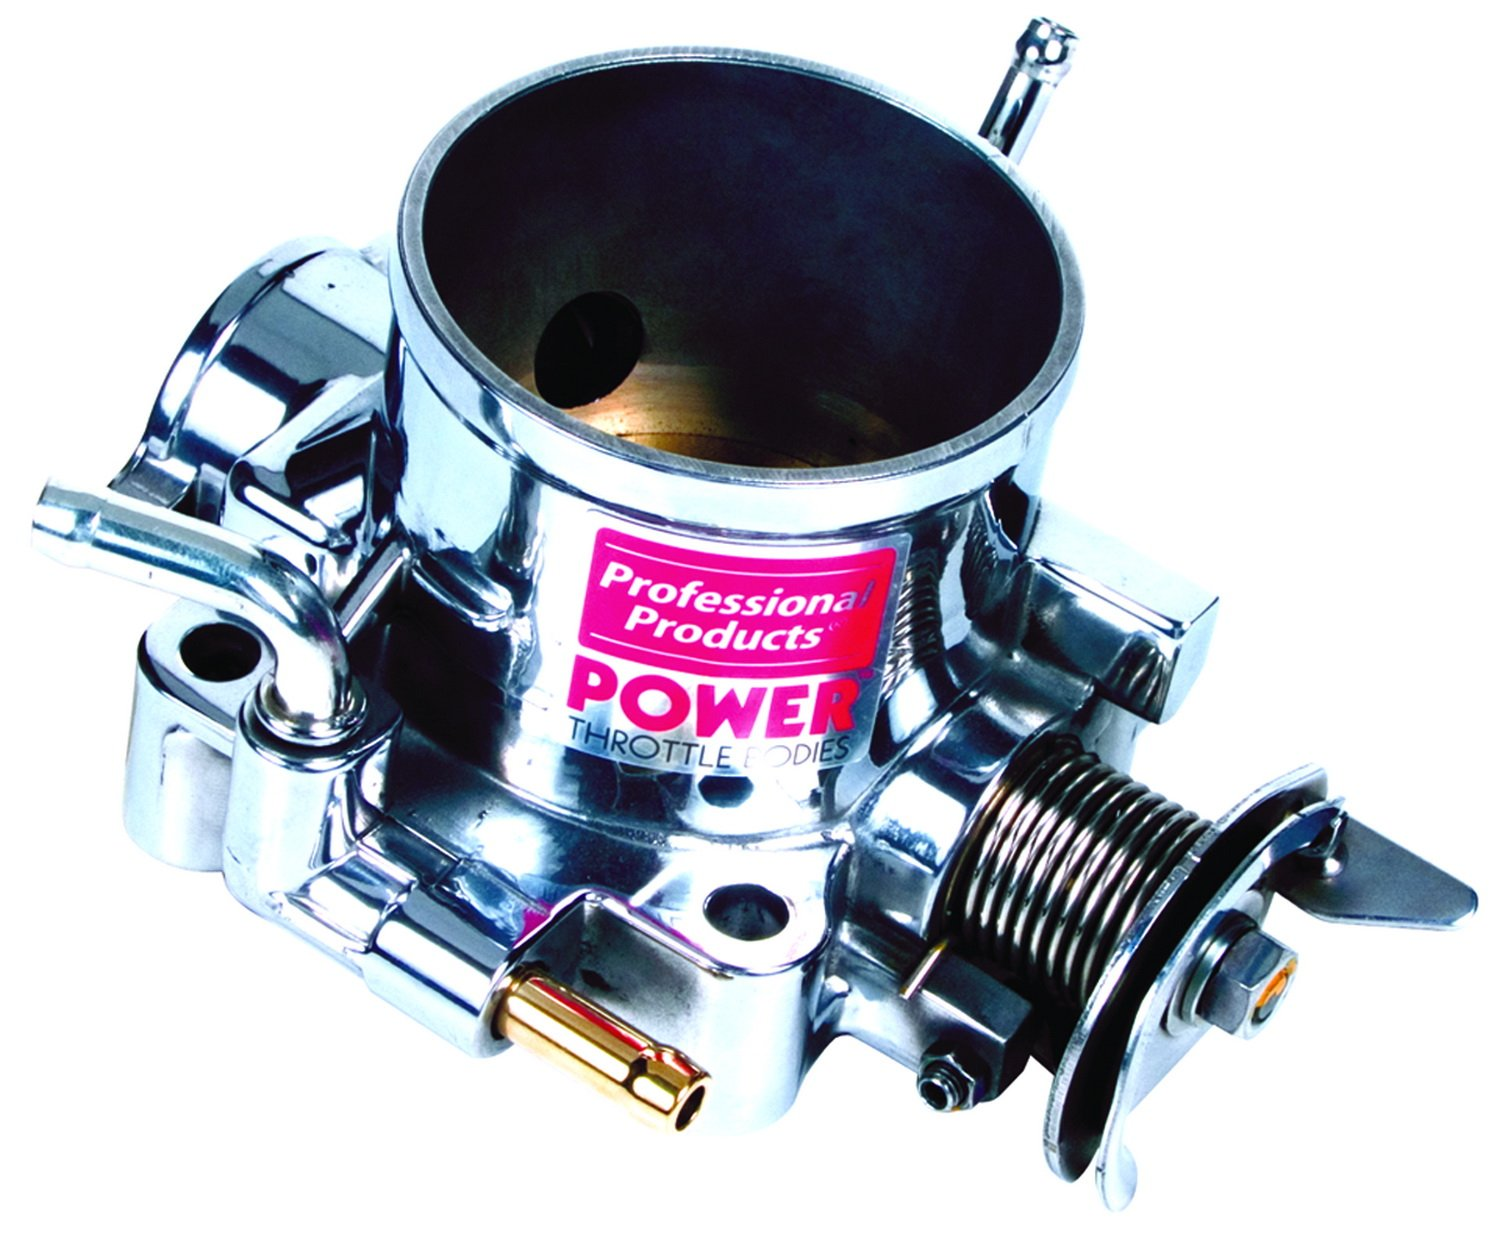 Professional Products 69606 68mm Polished Throttle Body by Professional Products